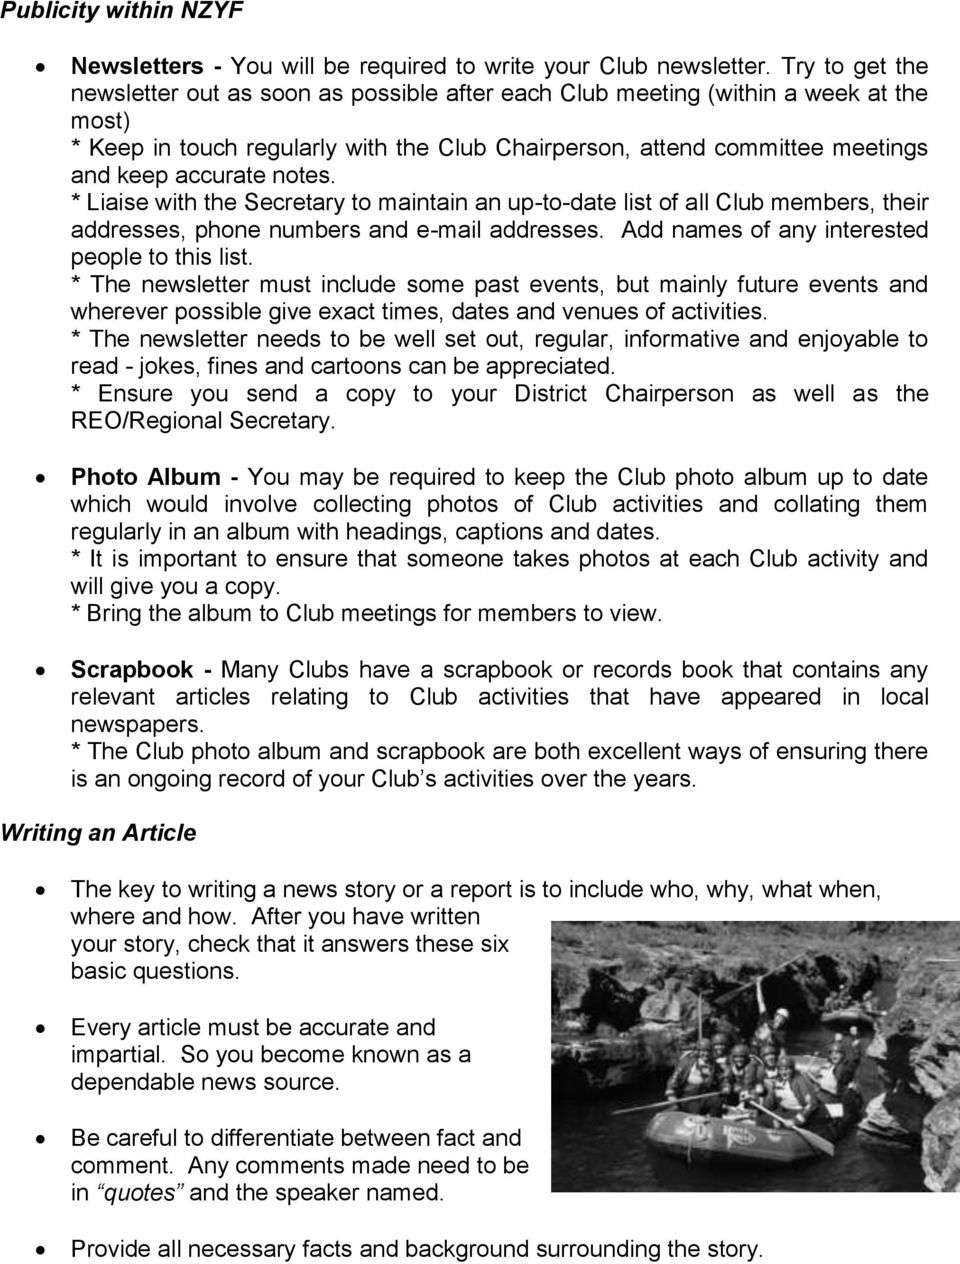 notes. * Liaise with the Secretary to maintain an up-to-date list of all Club members, their addresses, phone numbers and e-mail addresses. Add names of any interested people to this list.